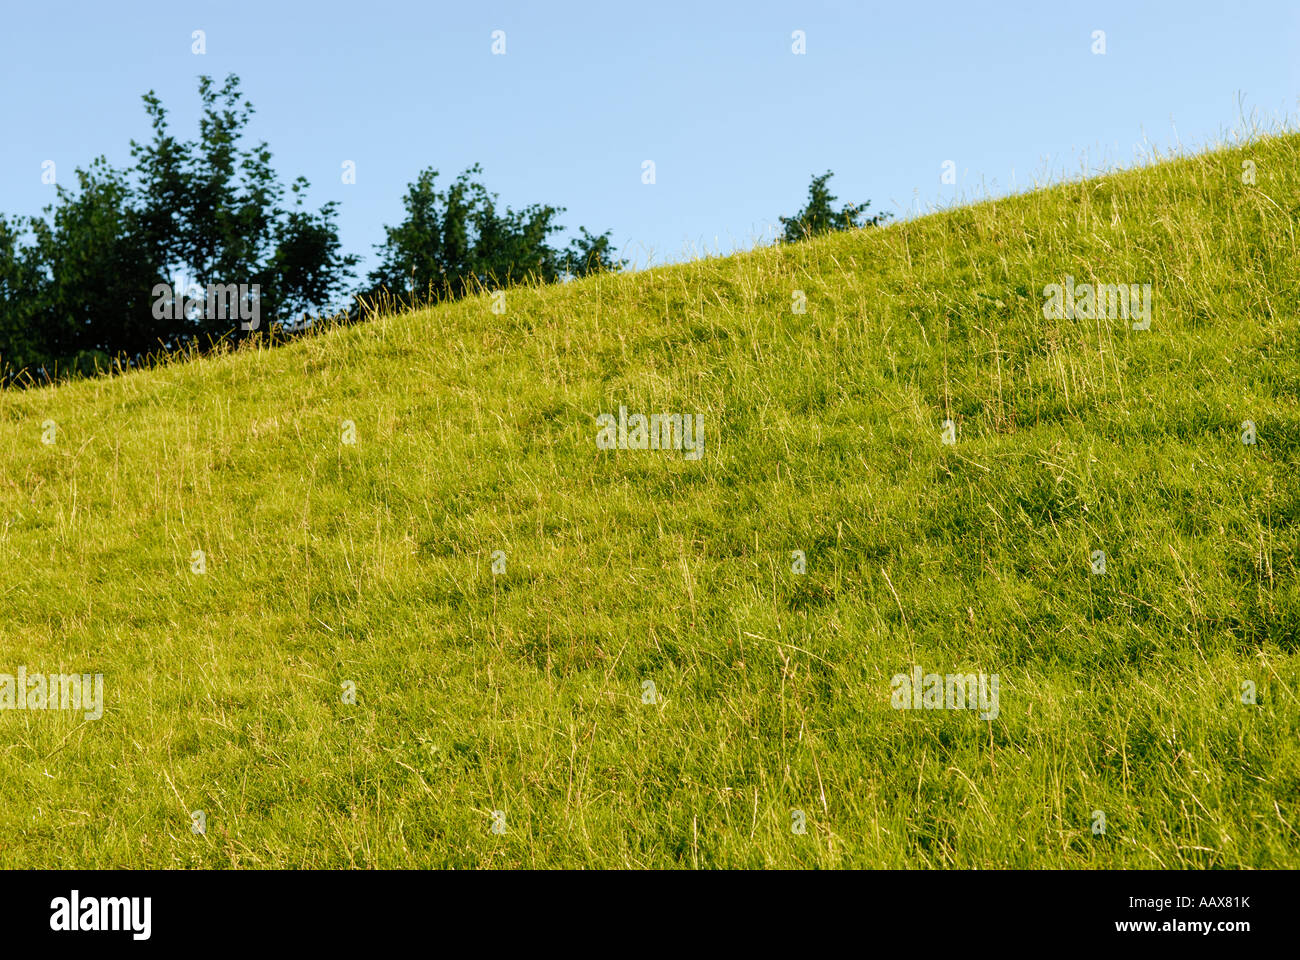 GREEN HILL - Stock Image